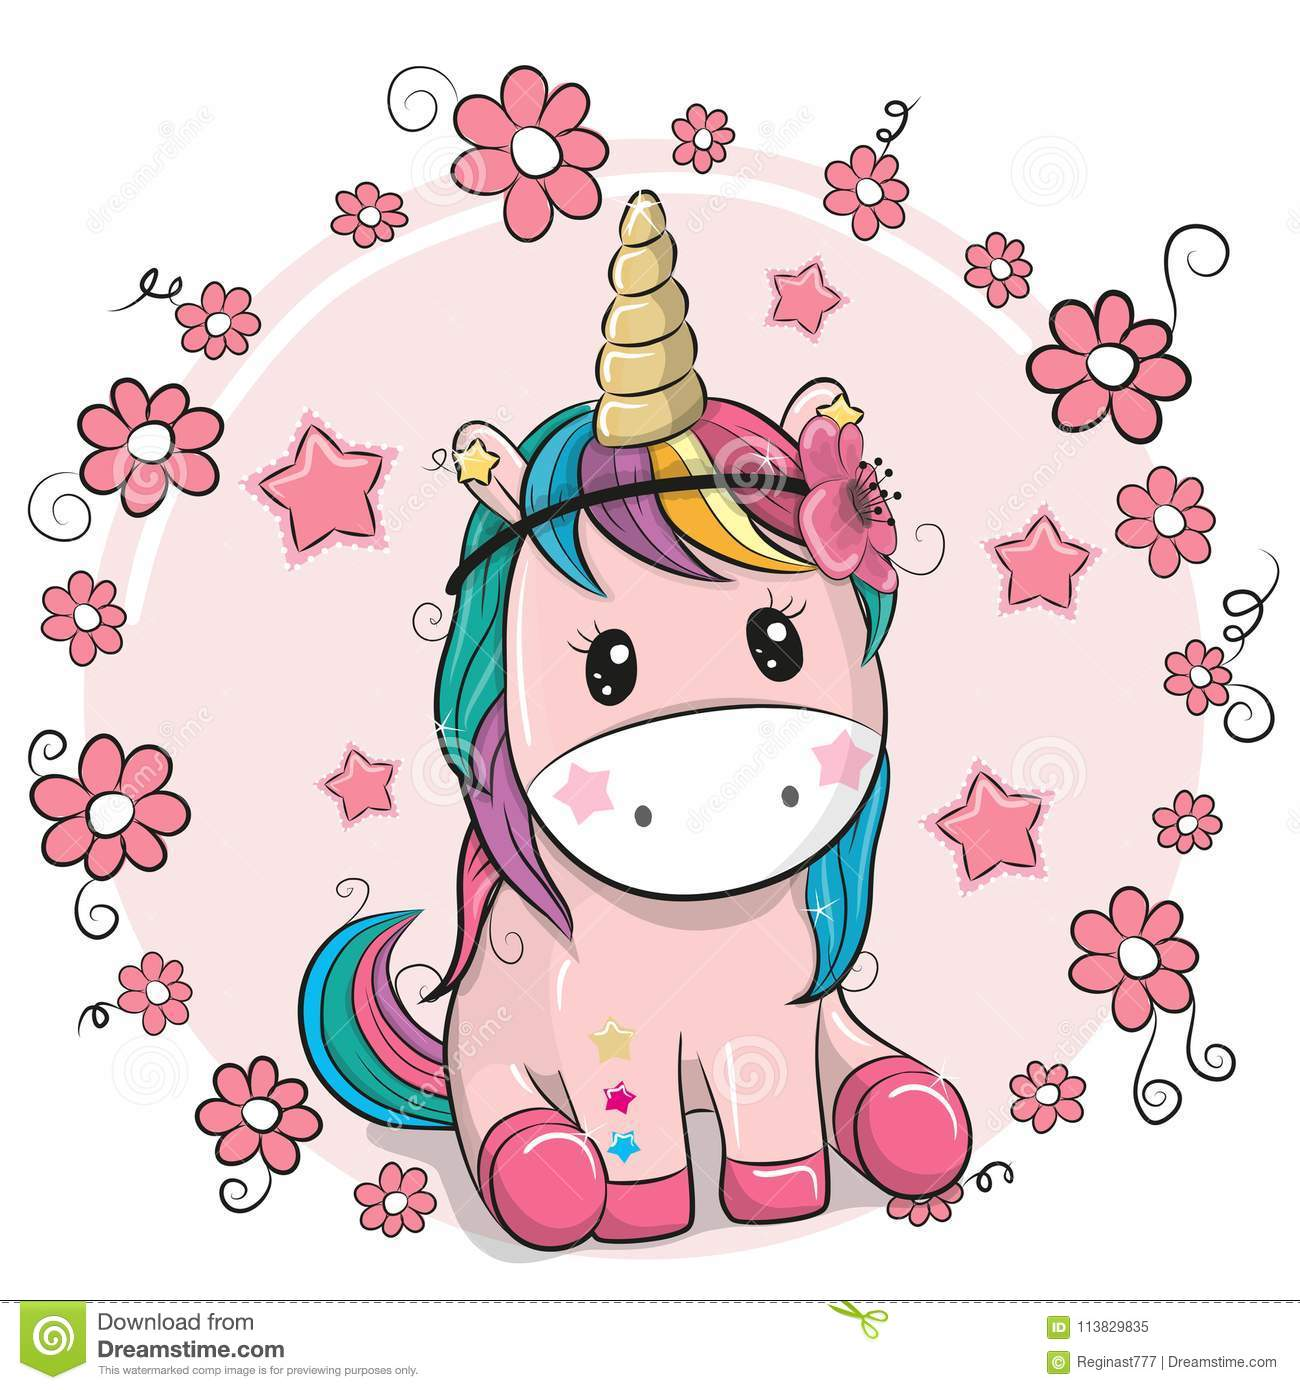 Download Greeting Card Unicorn With Flowers On A Pink Background Stock Vector